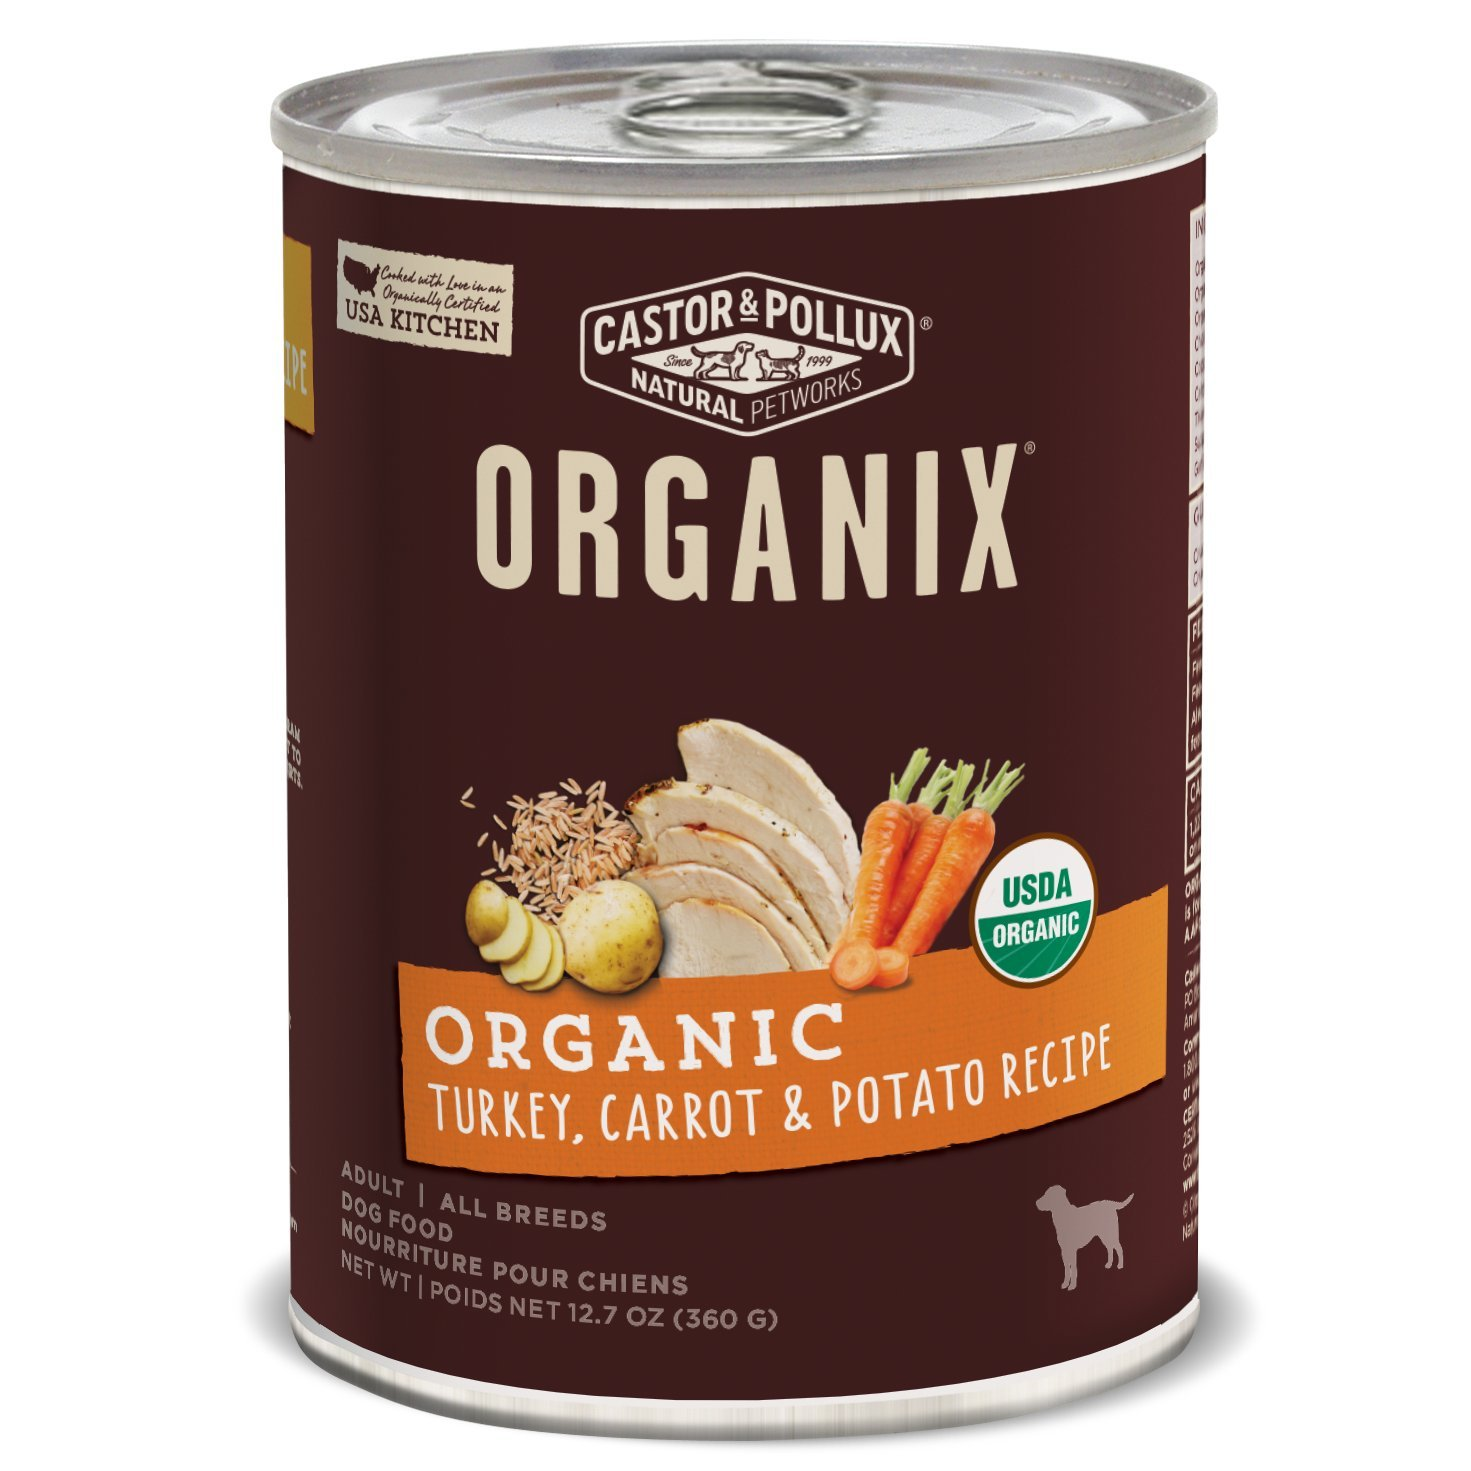 Castor & Pollux Organix Organic Turkey, Carrot & Potato Recipe, 12.7 oz, Case of 12 Cans by Castor & Pollux (Image #1)